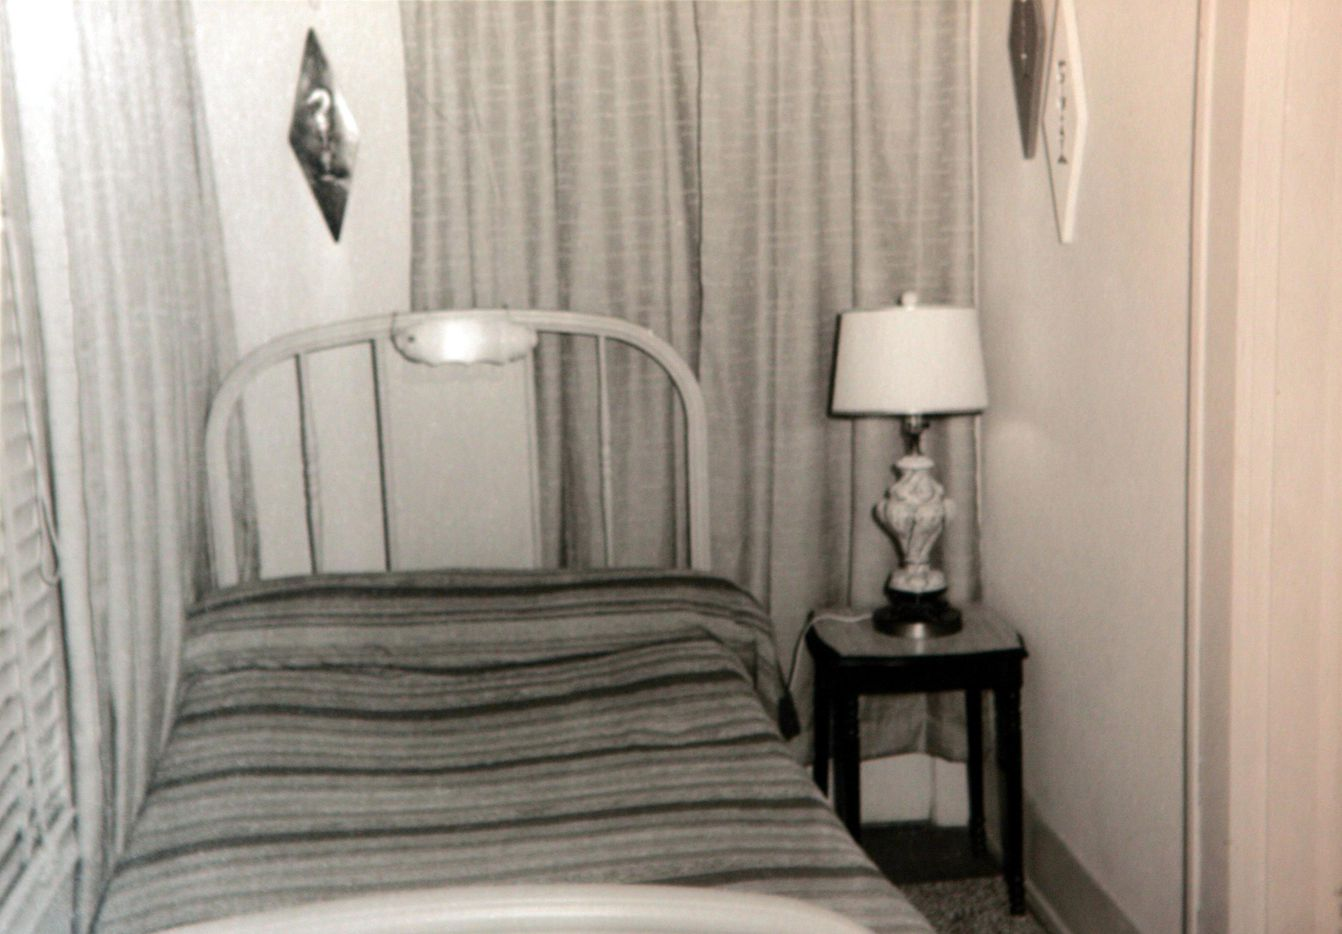 A picture from the files of Patricia Puckett Hall showing the room that Lee Harvey Oswald rented during the time he assassinated President Kennedy.